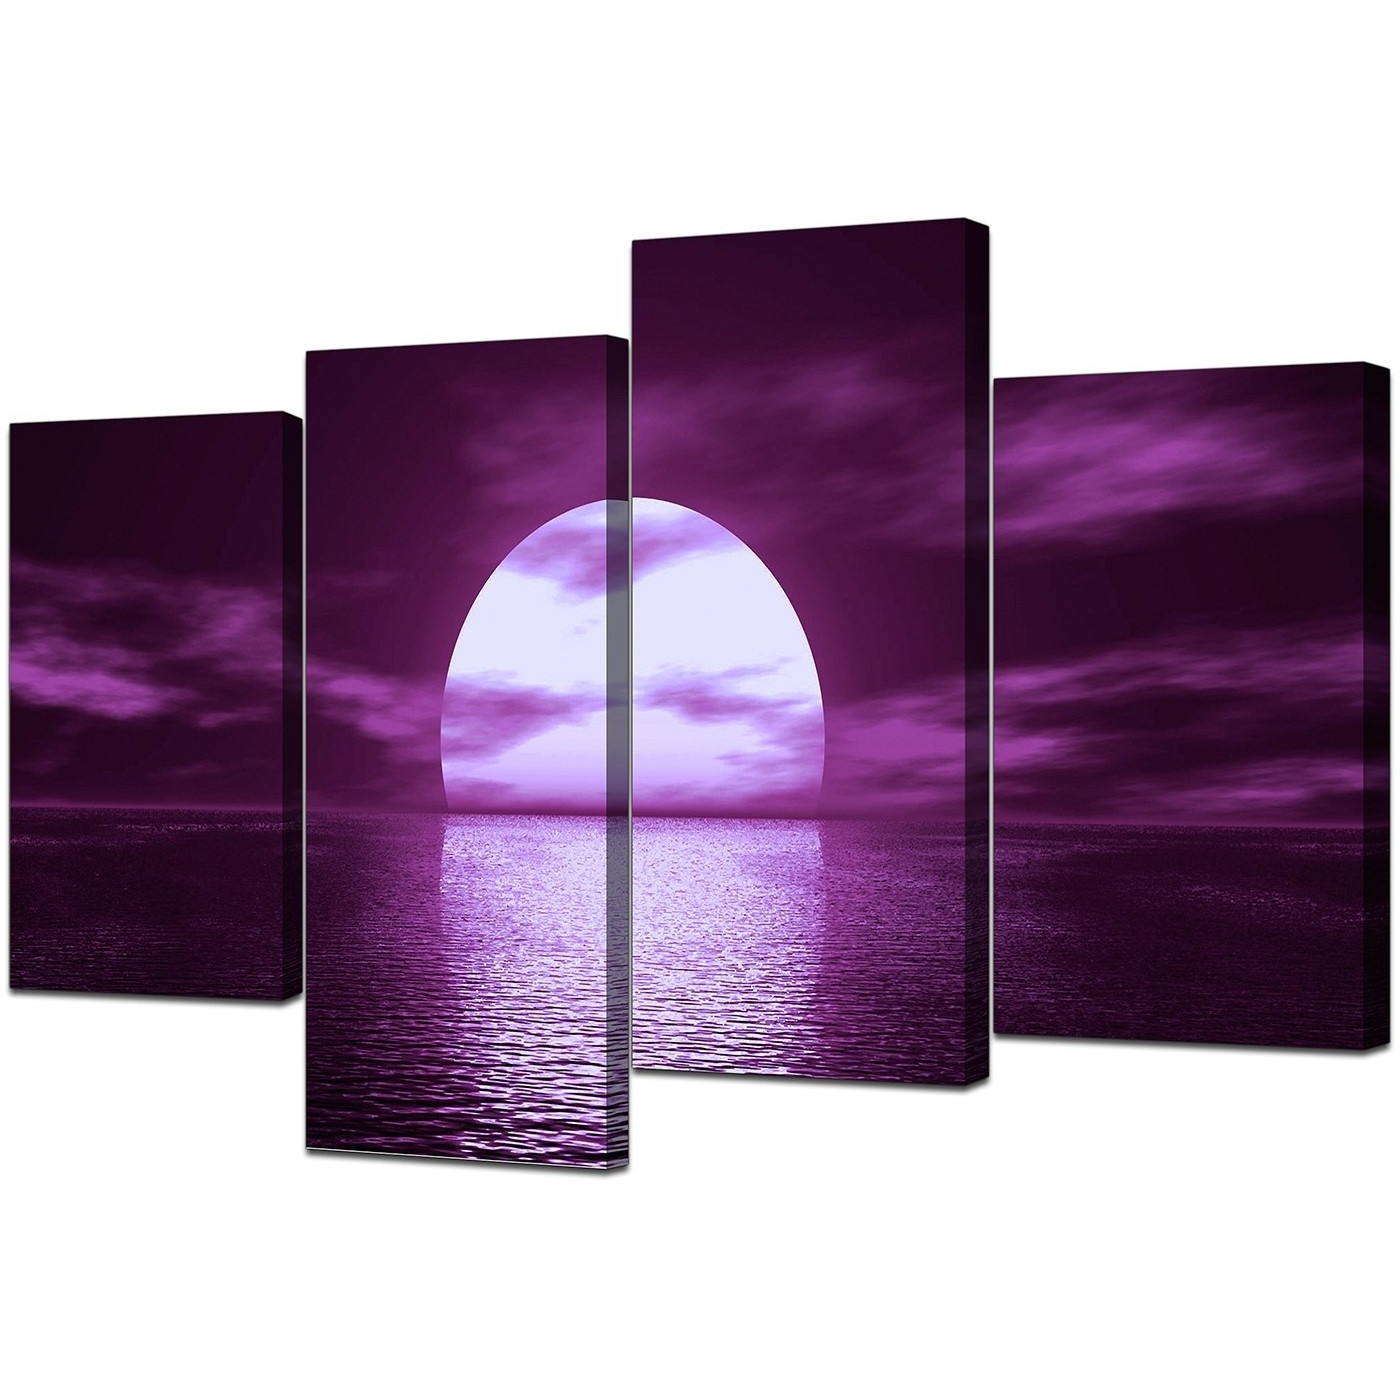 Current Purple Wall Art Canvas With Sunset Seascape Canvases In Purple – For Bedroom (View 3 of 15)